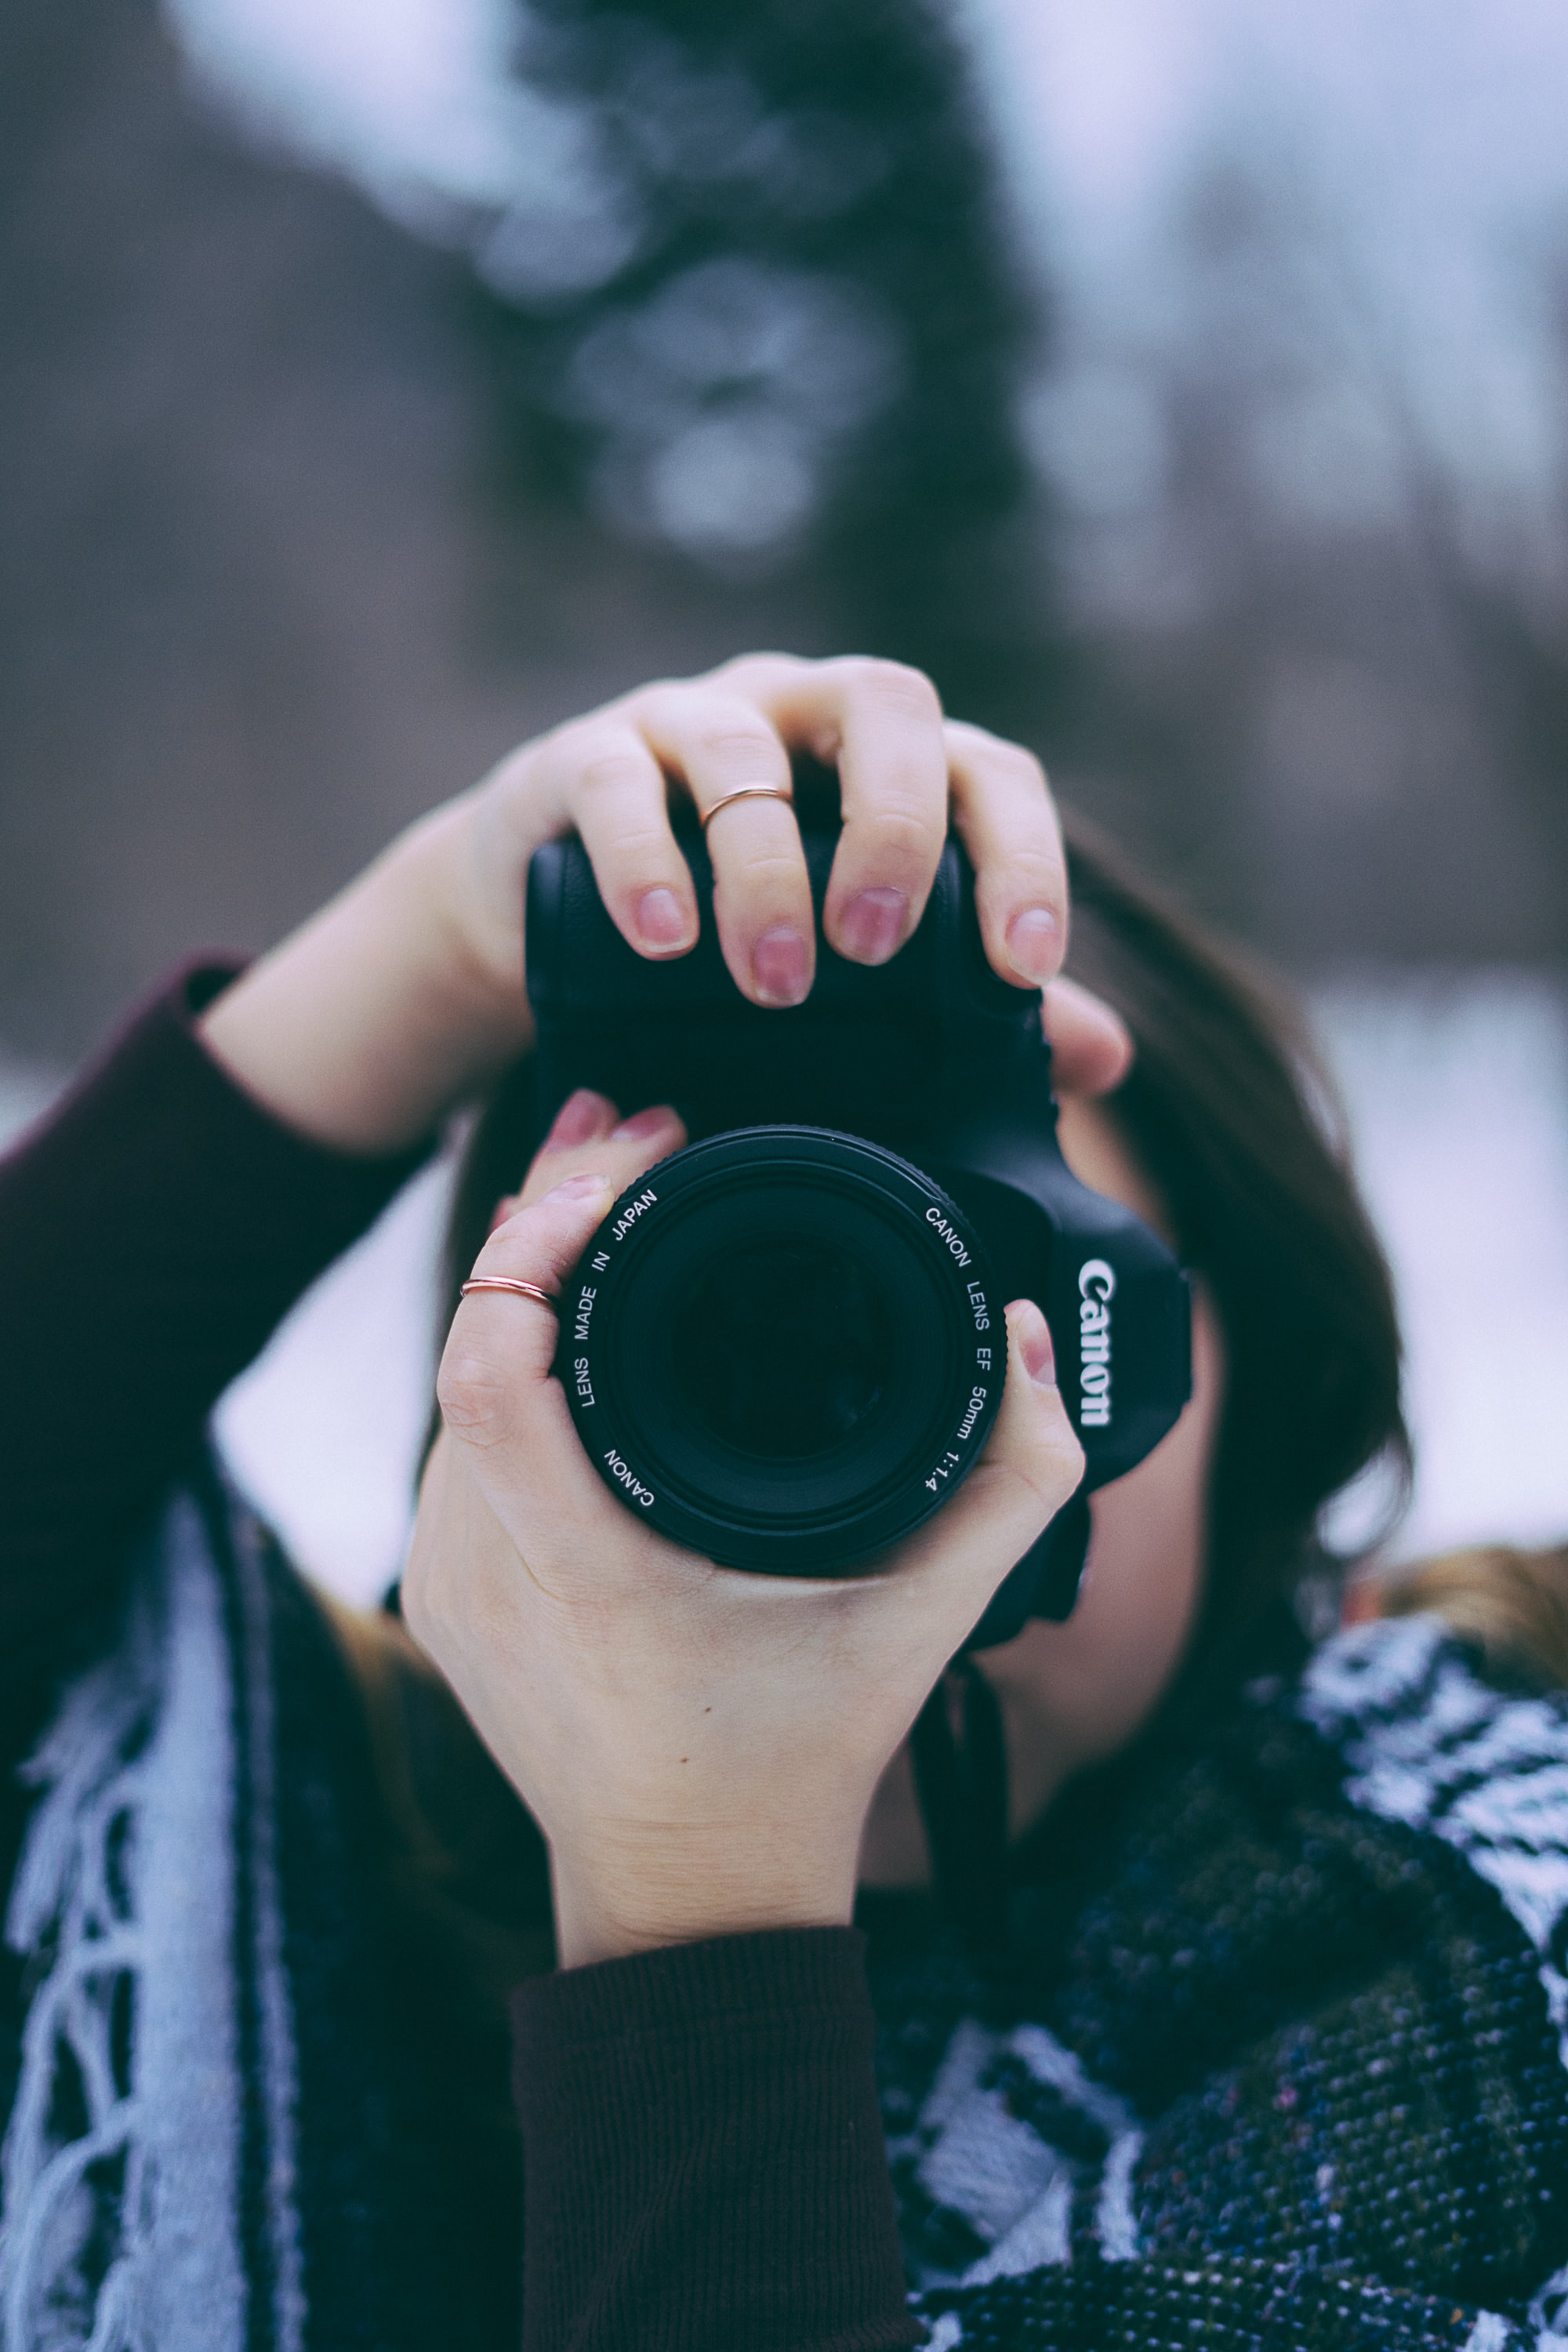 A woman taking a photo with a Canon camera in a wintry scenery